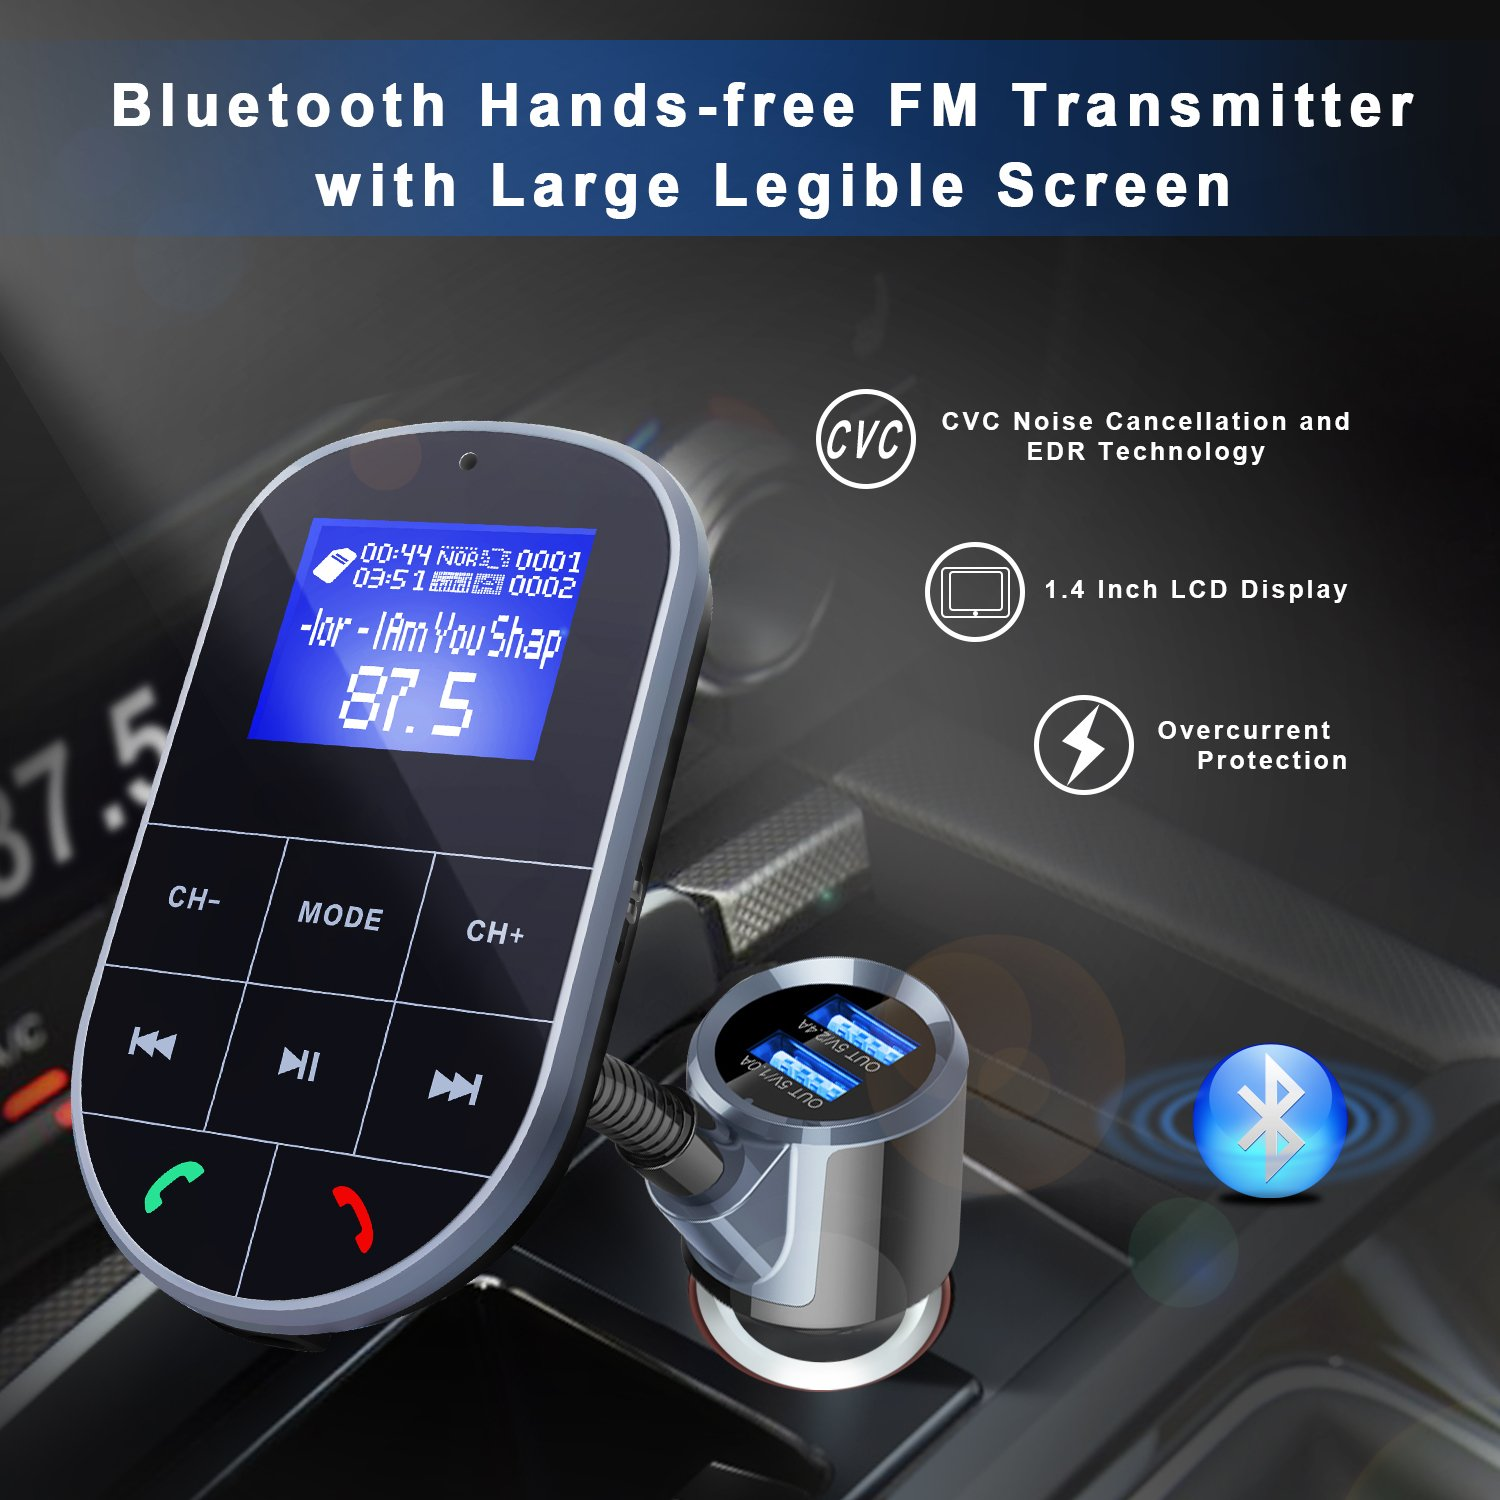 Bluetooth FM Transmitter For Car, Wireless Bluetooth FM Radio Adapter 2 Ports USB Car Charger 5V/2.4A&1A with Hands-Free Calling, Micro SD Card Aux Output by IMDEN (Image #7)